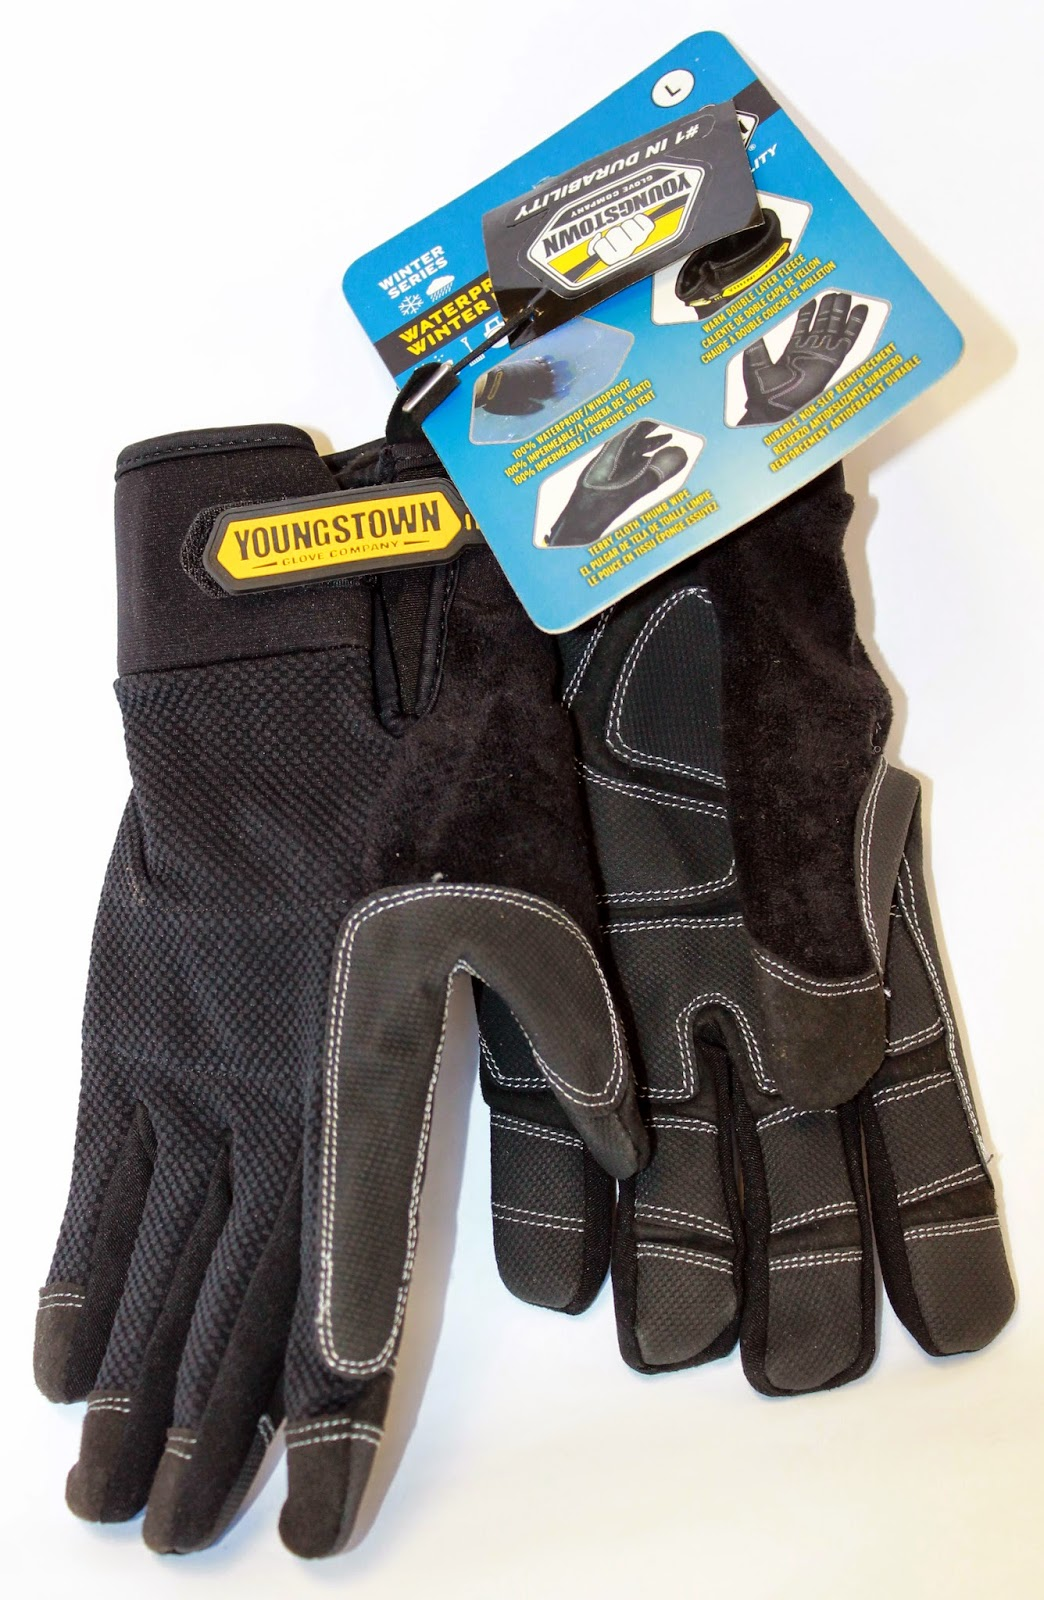 Winter Gloves Review